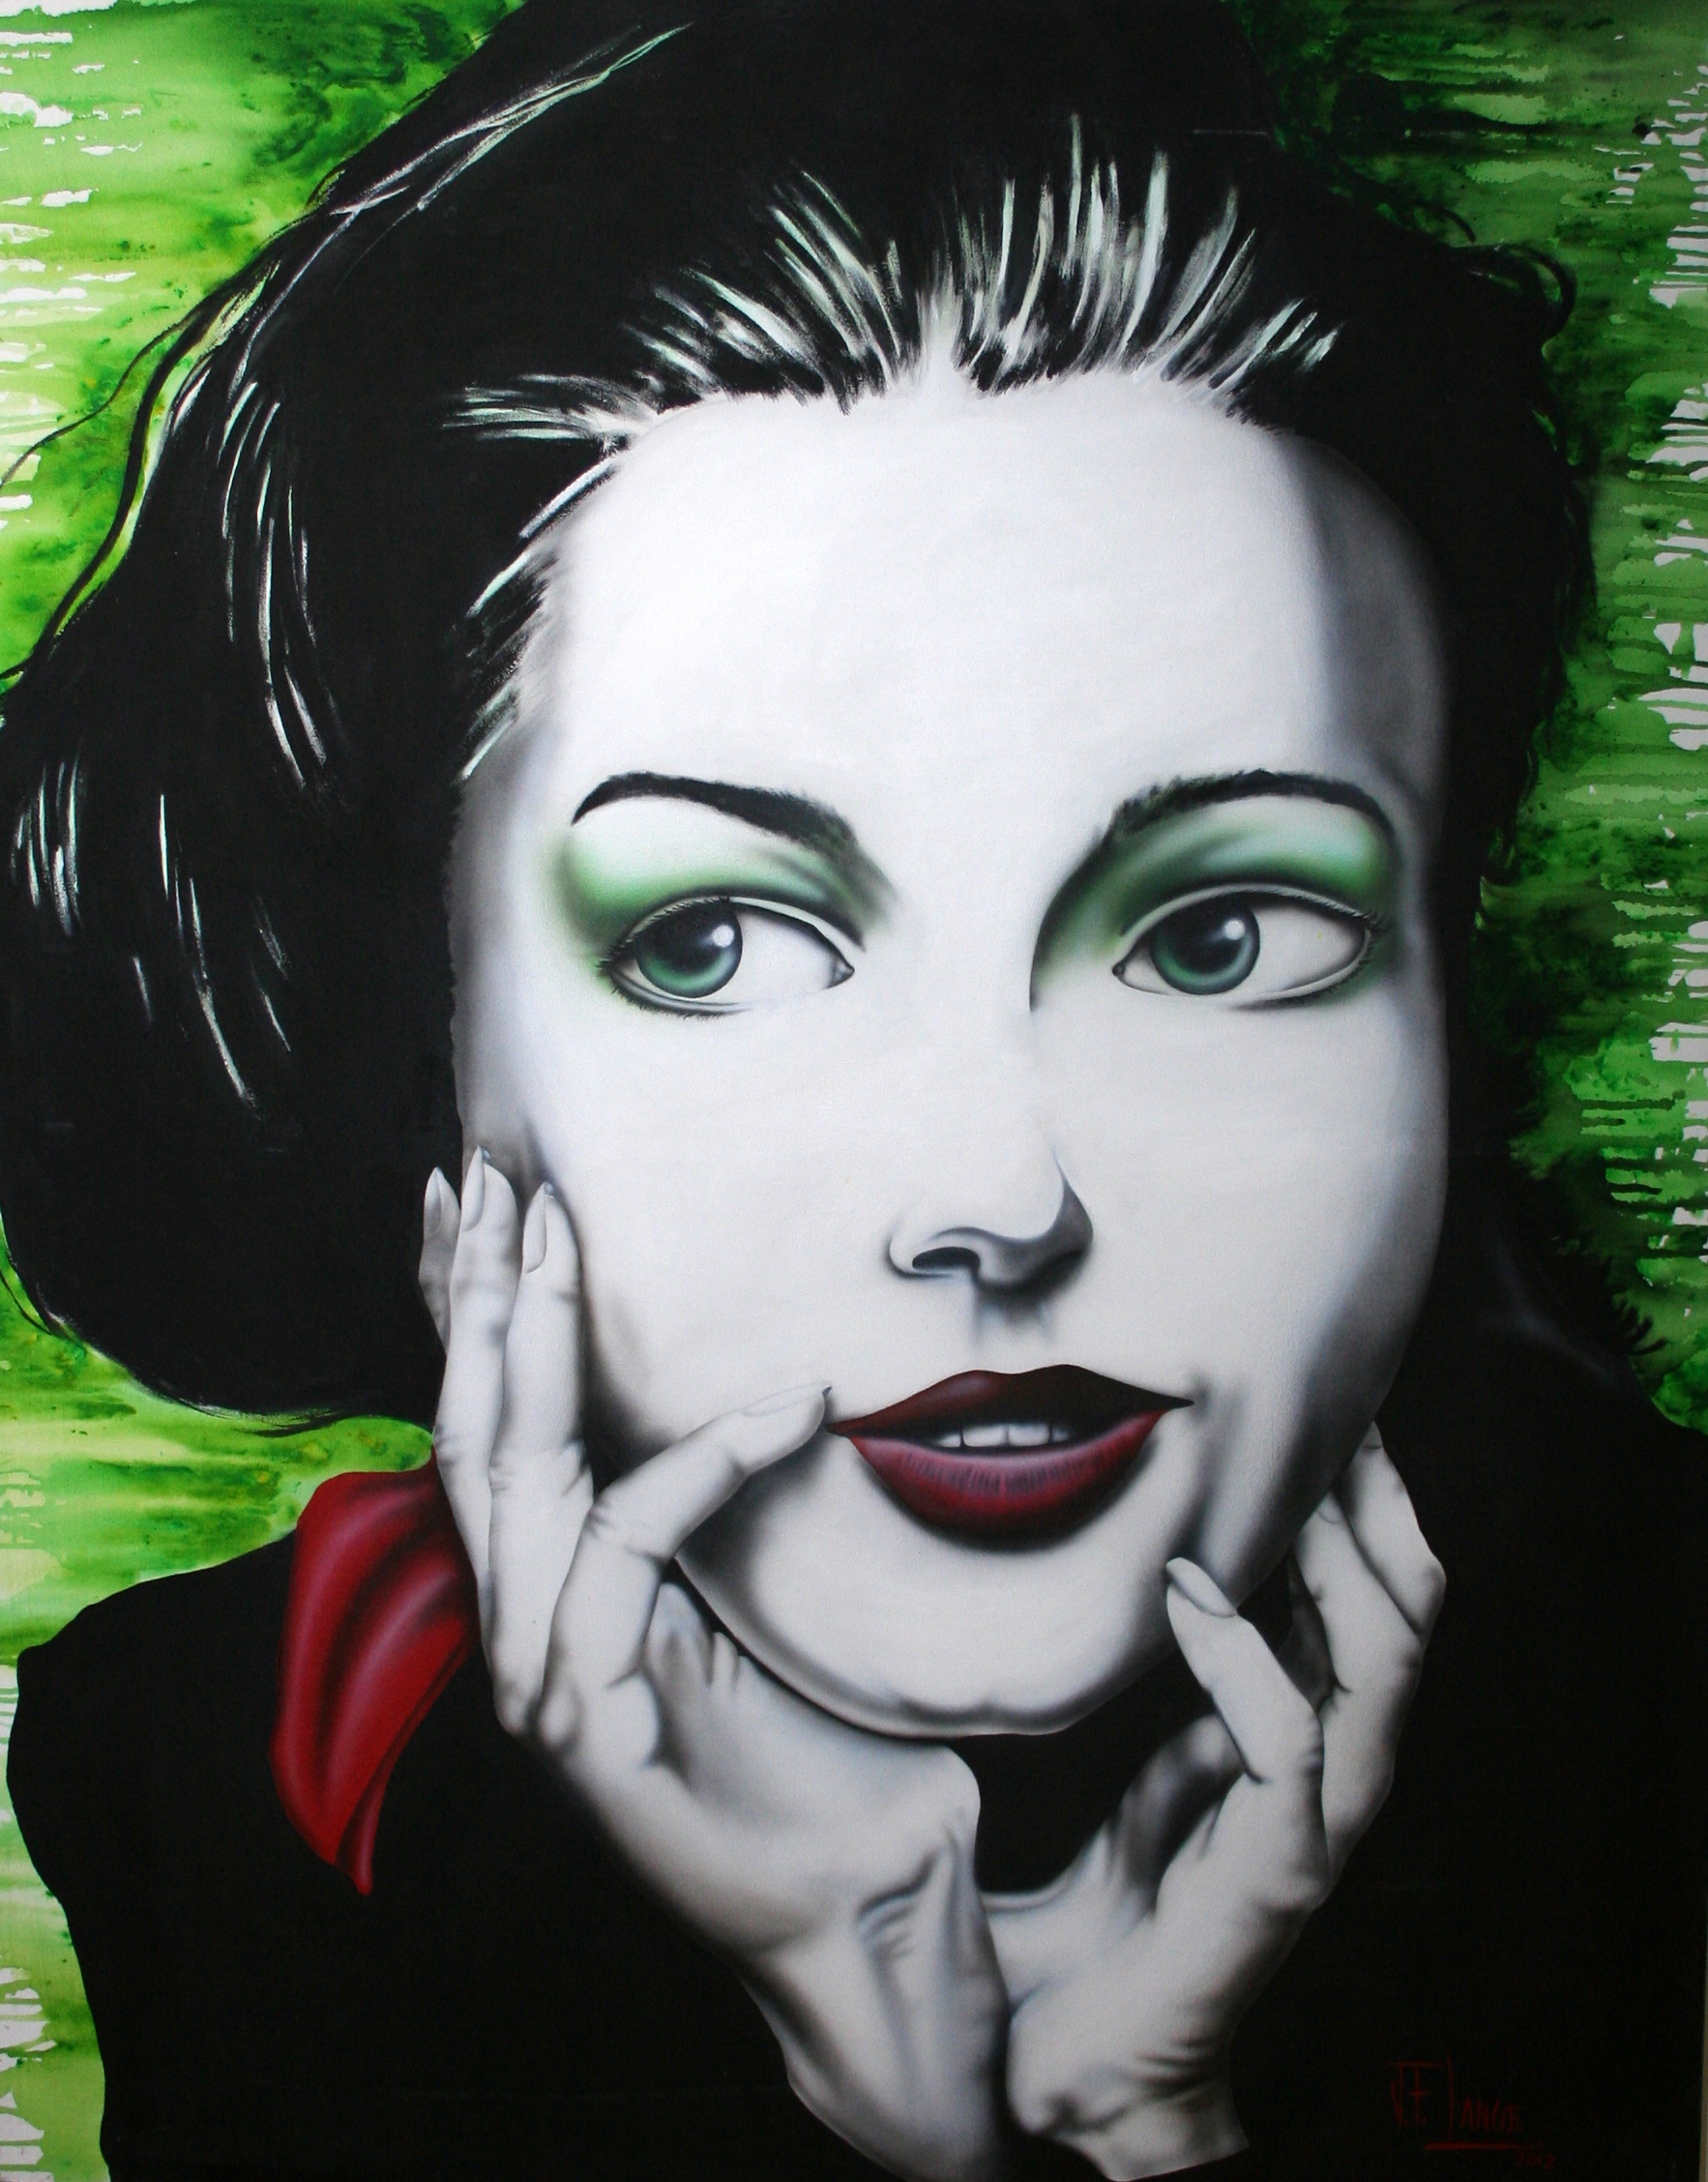 Green Girl by Artist Jon Lange